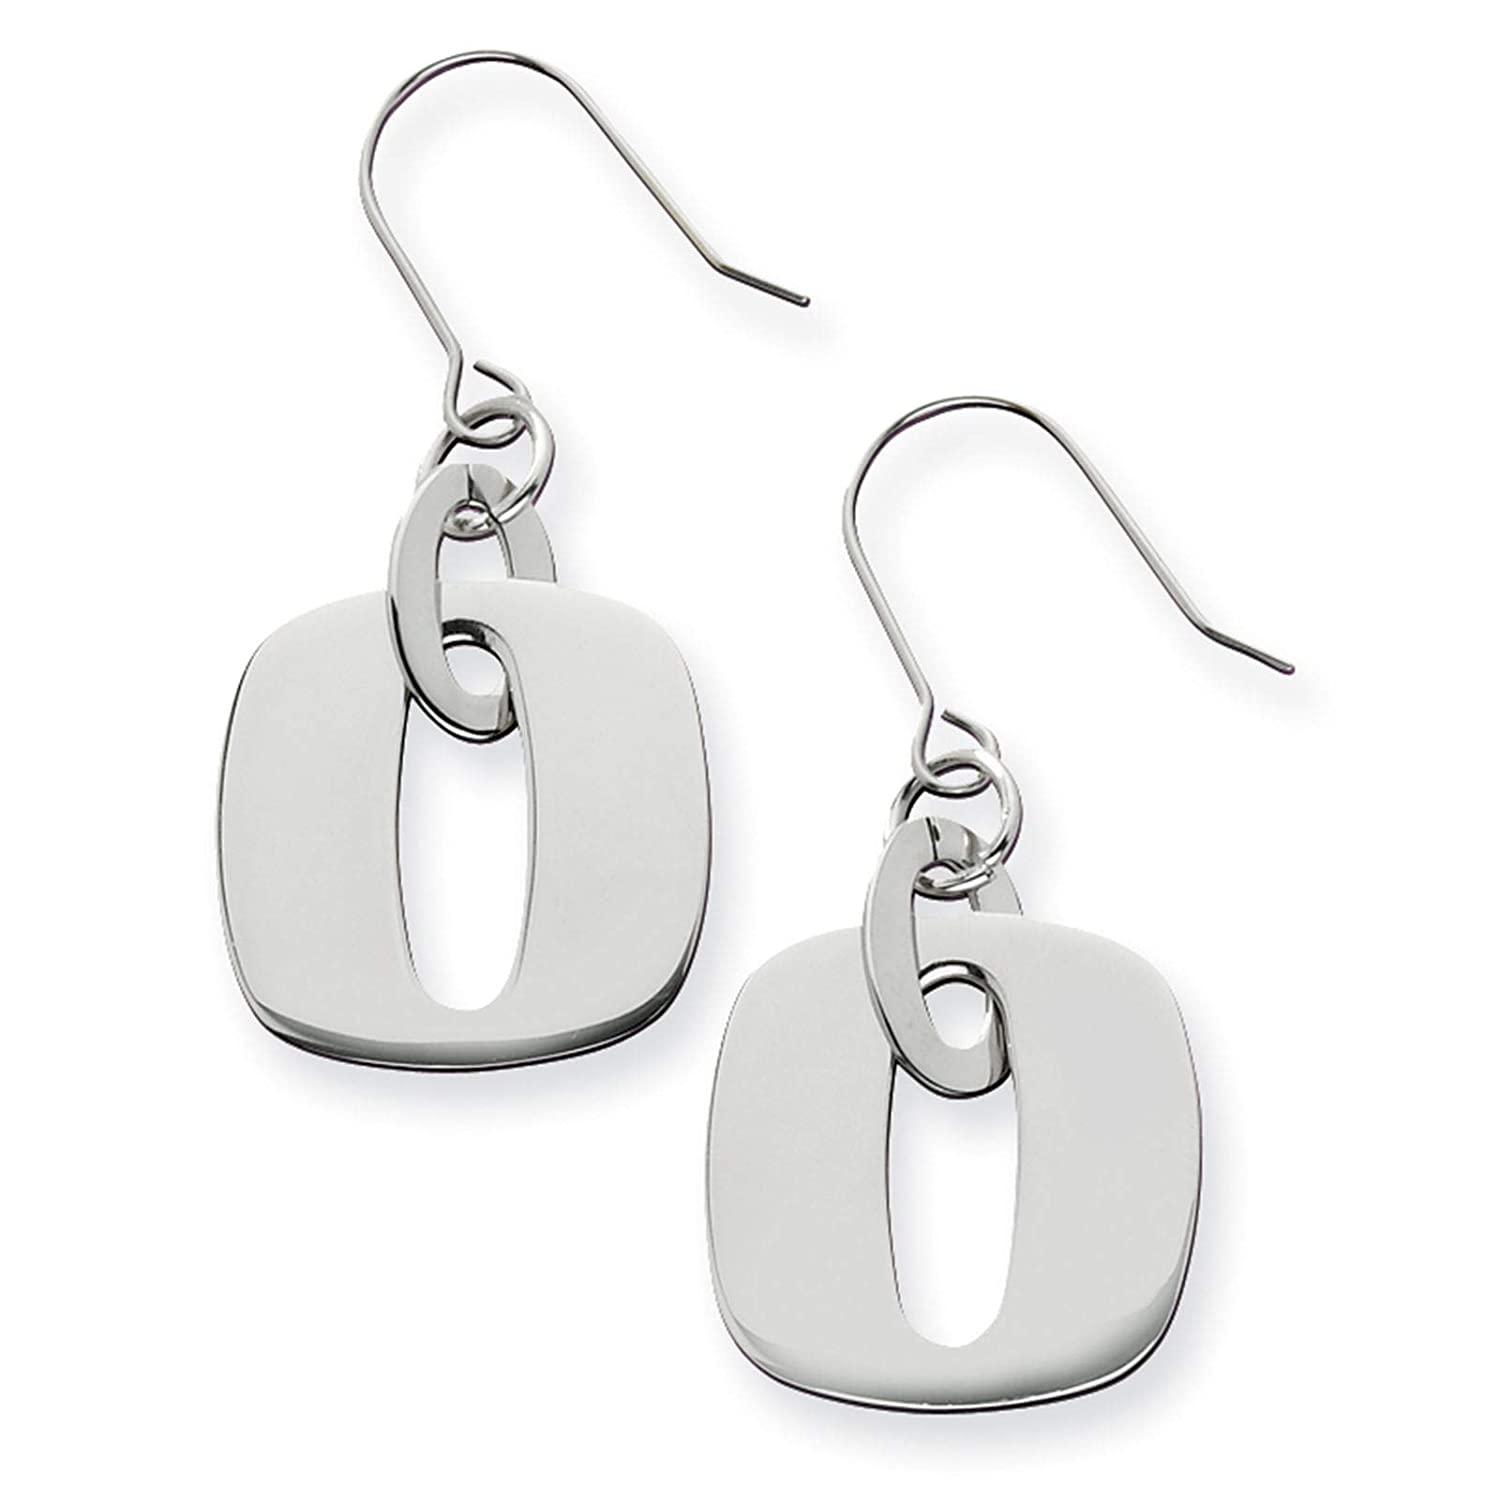 Stainless Steel Polished Square Link Dangle Earrings